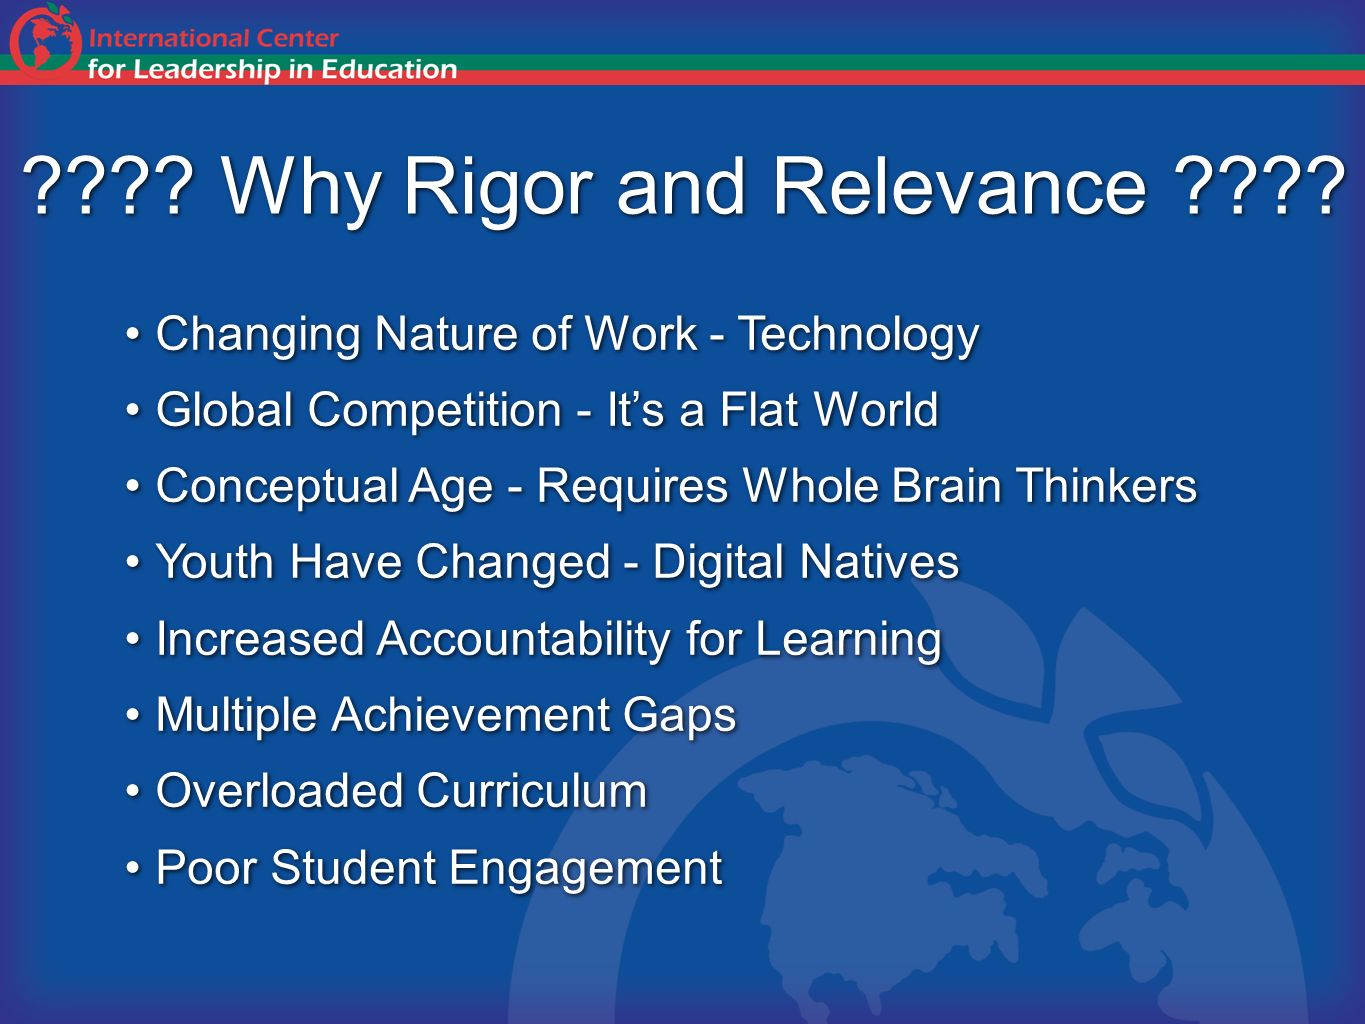 34 Research When to Use Strategy Based on Rigor/Relevance Framework